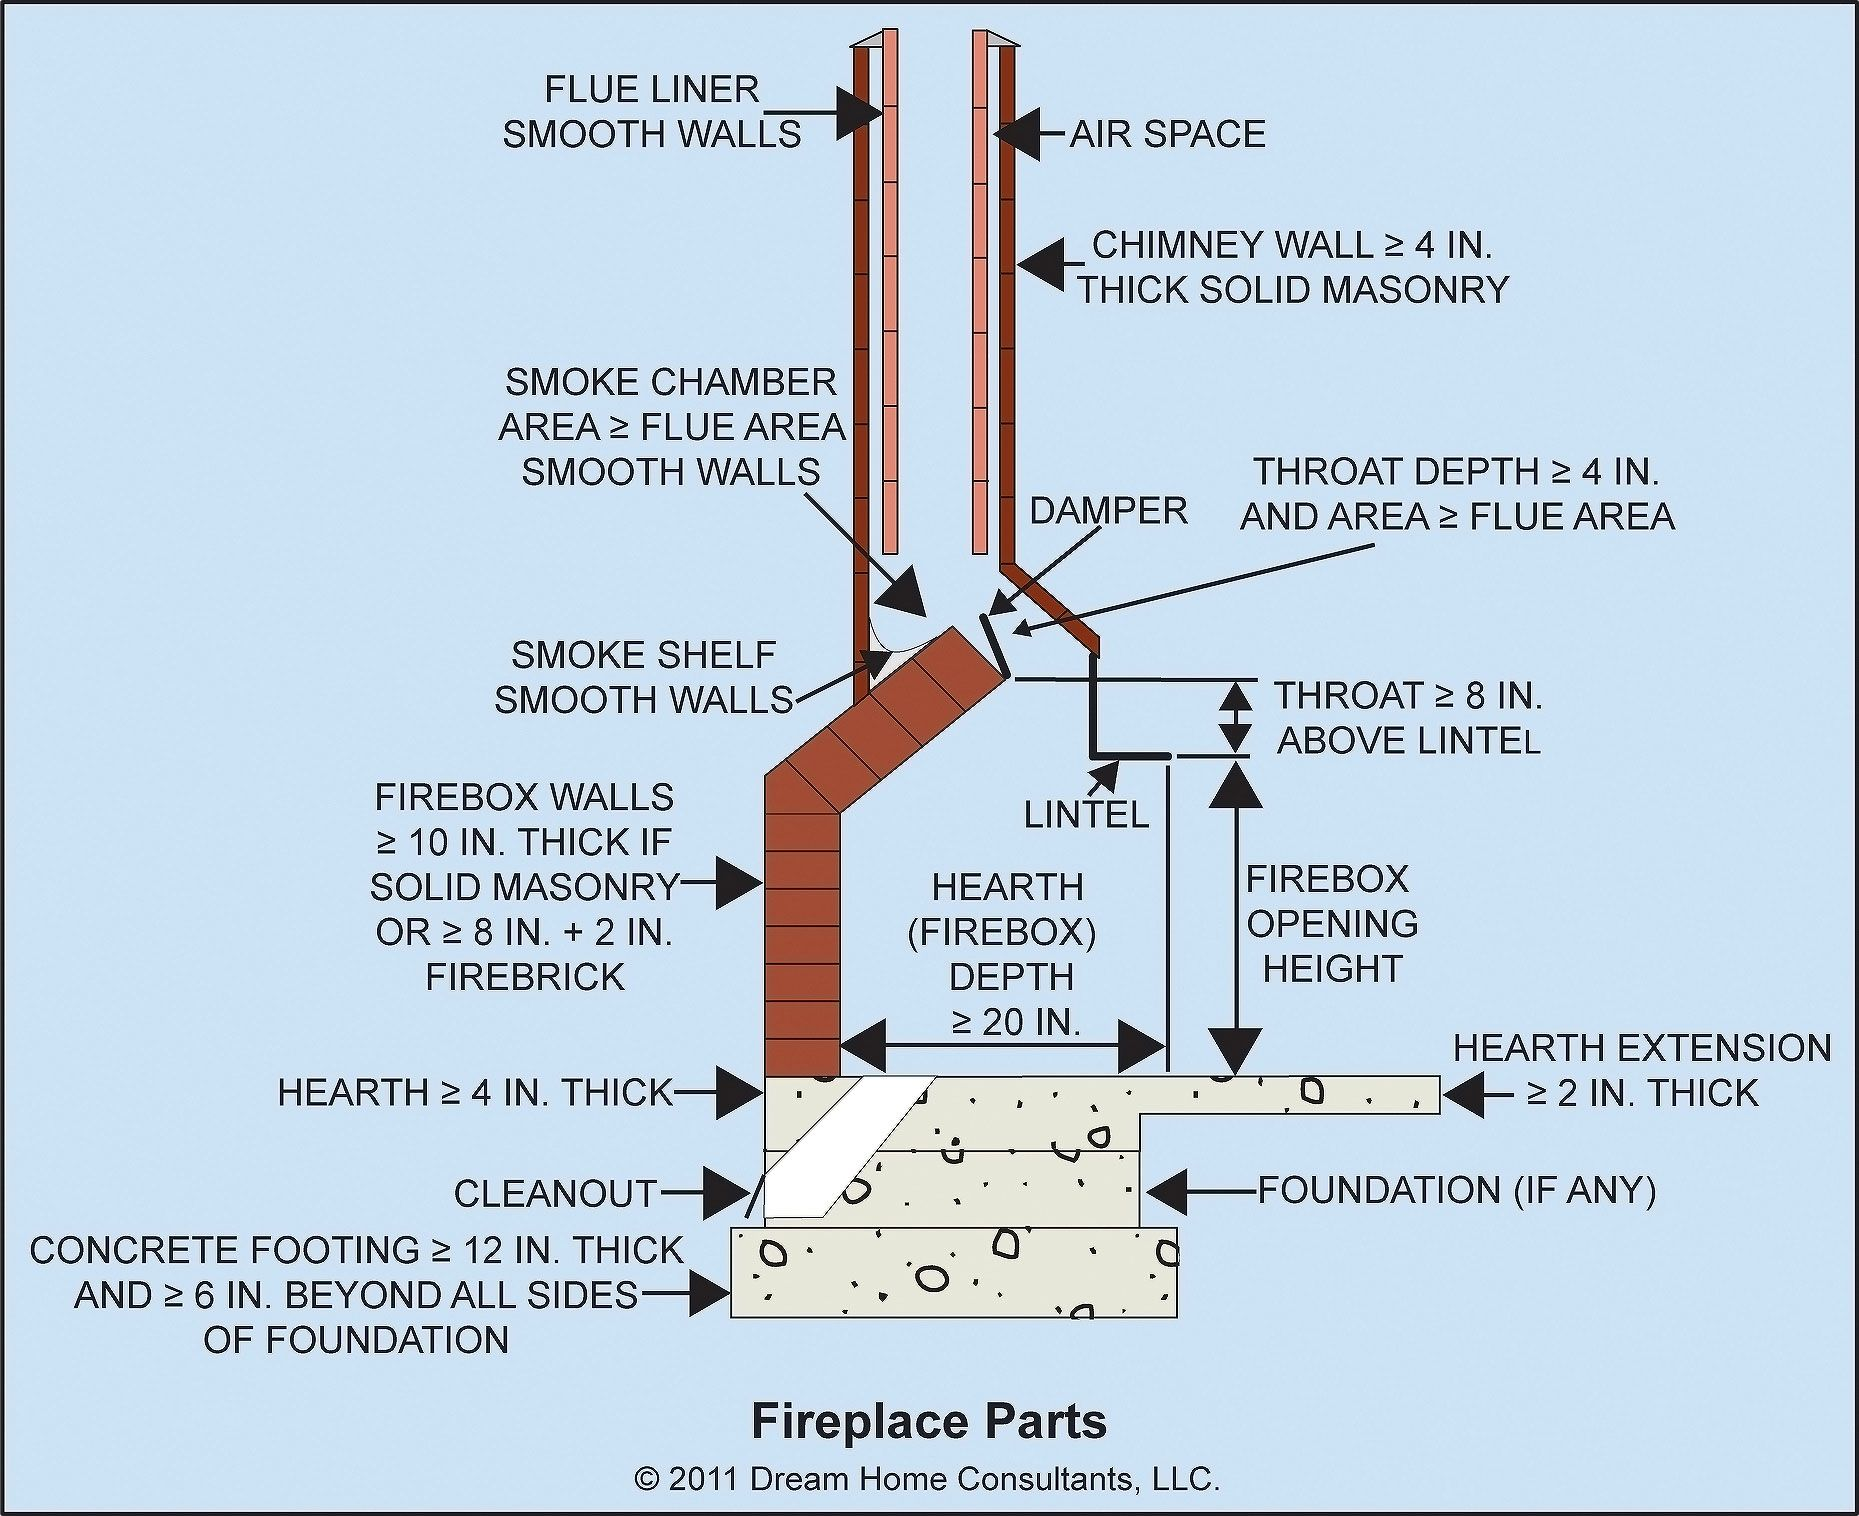 hight resolution of firebox diagram fireplace parts home fireplace fireplaces diagram construction fireplace set